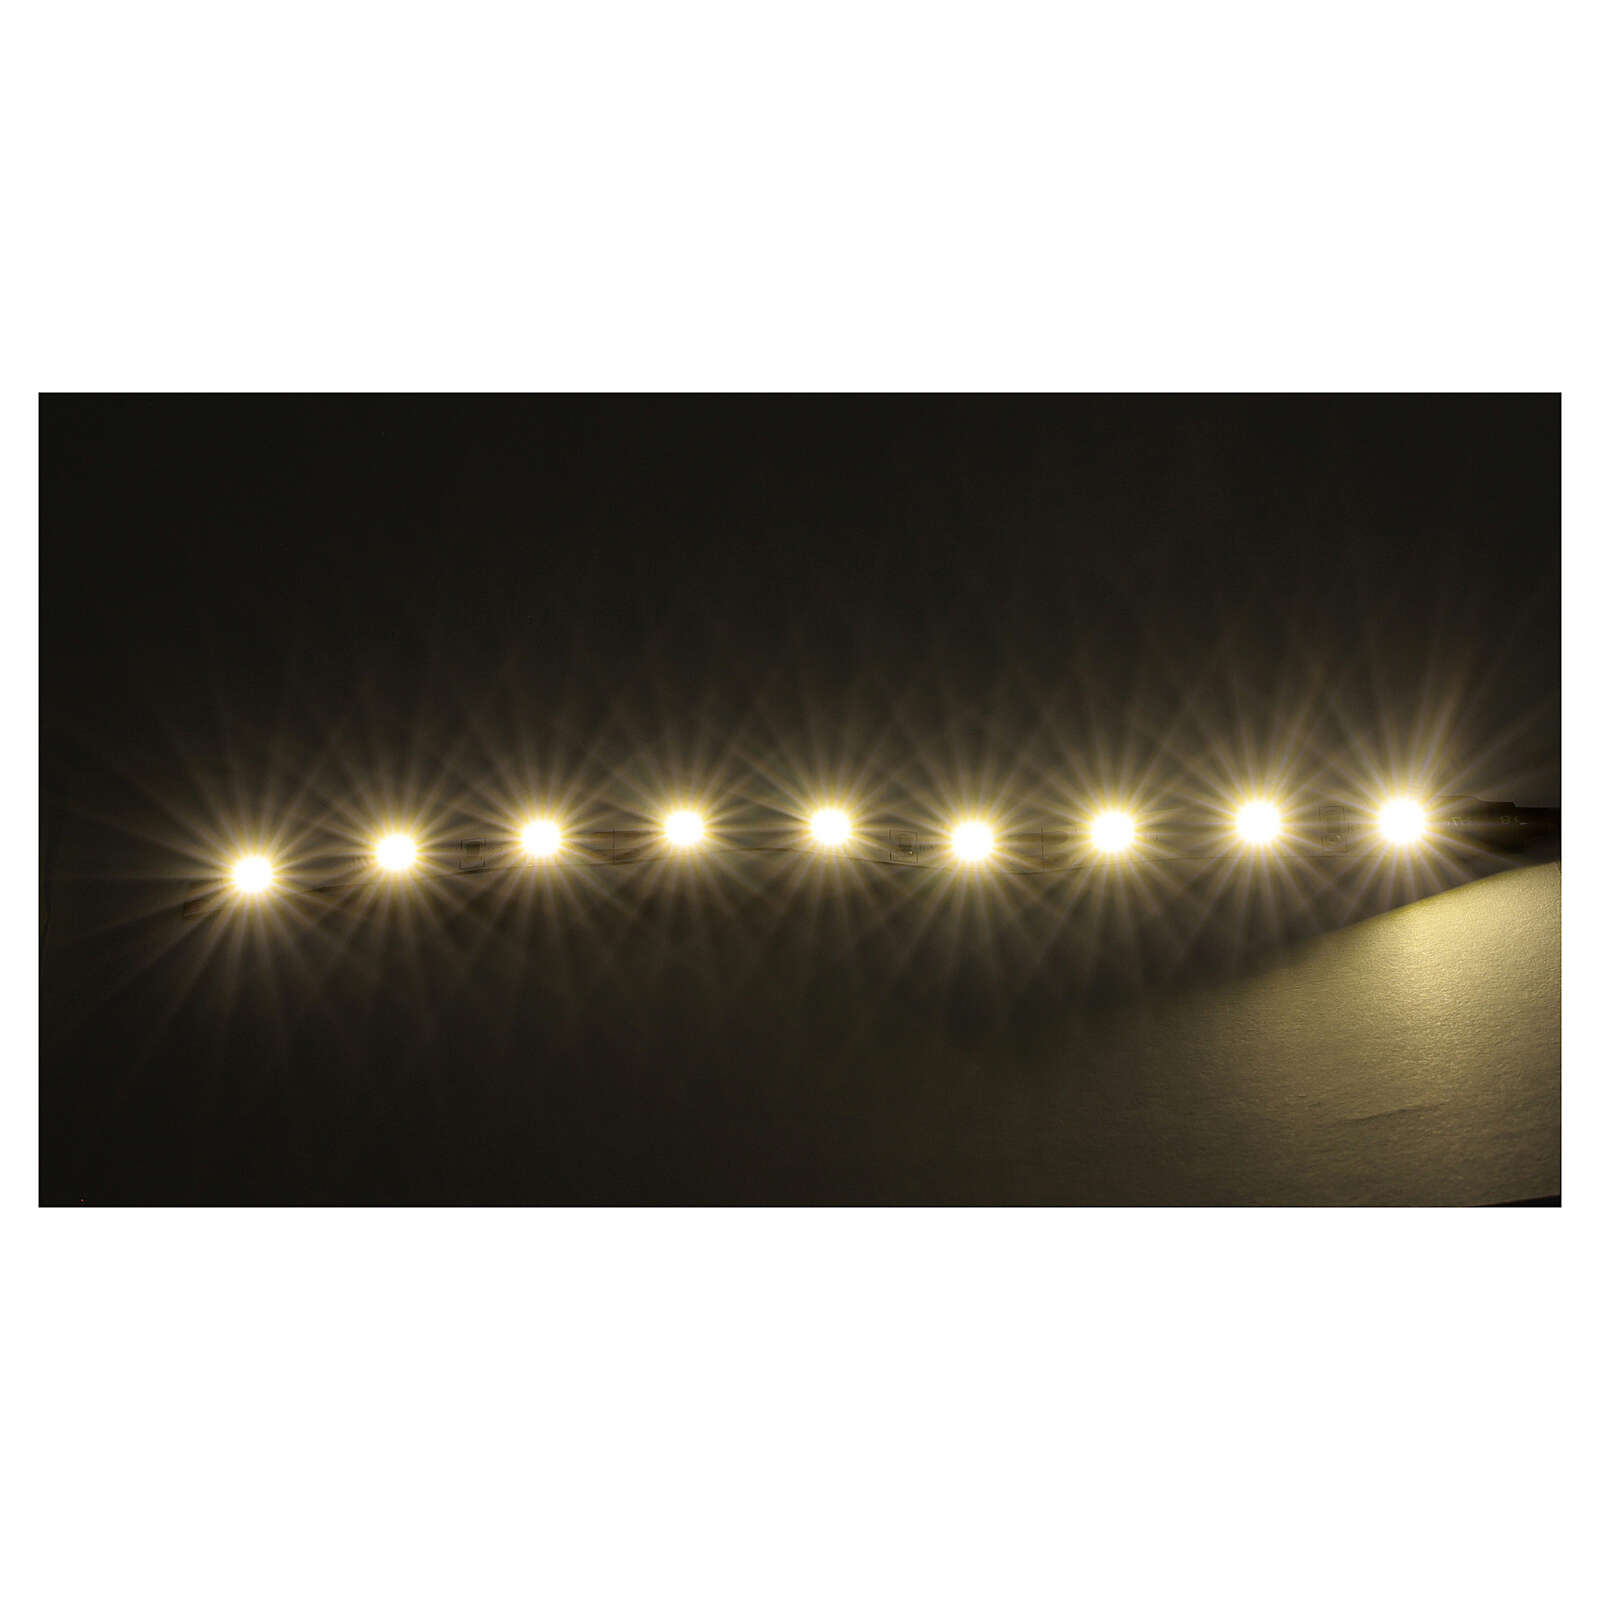 LED strip with 9 lights 0,8x12cm, white for Frisalight 4